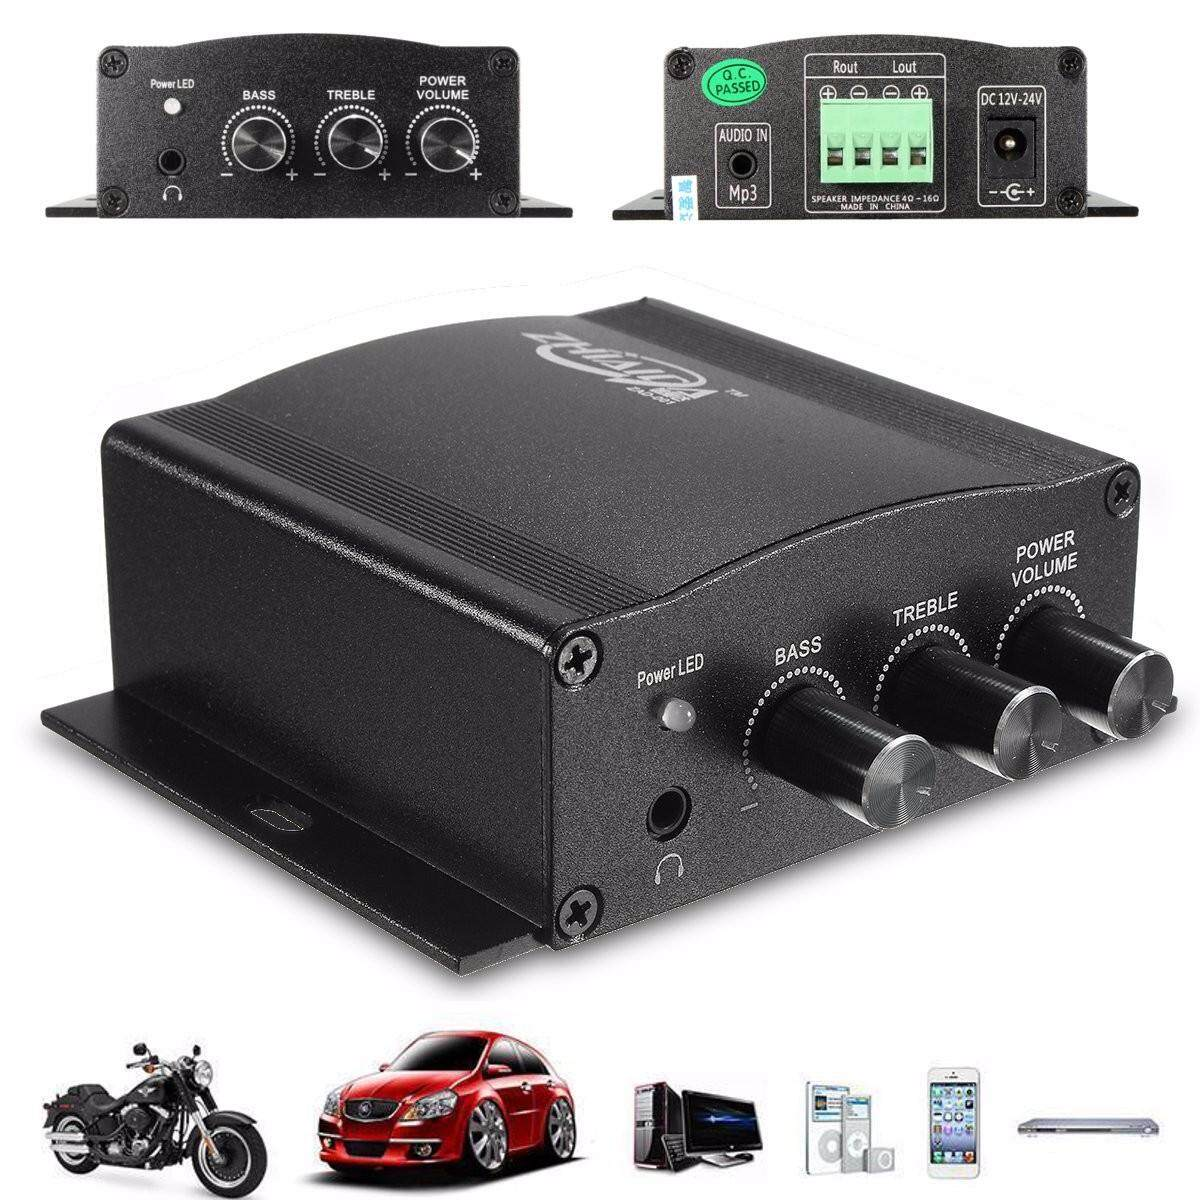 Car Amplifier For Sale Audio Online Brands Prices Subwoofer Vx 12 Bd 12v 30w Mini Hifi Stereo Amp Booster Bass Mp3 Ipod Motorcycle Home Intl